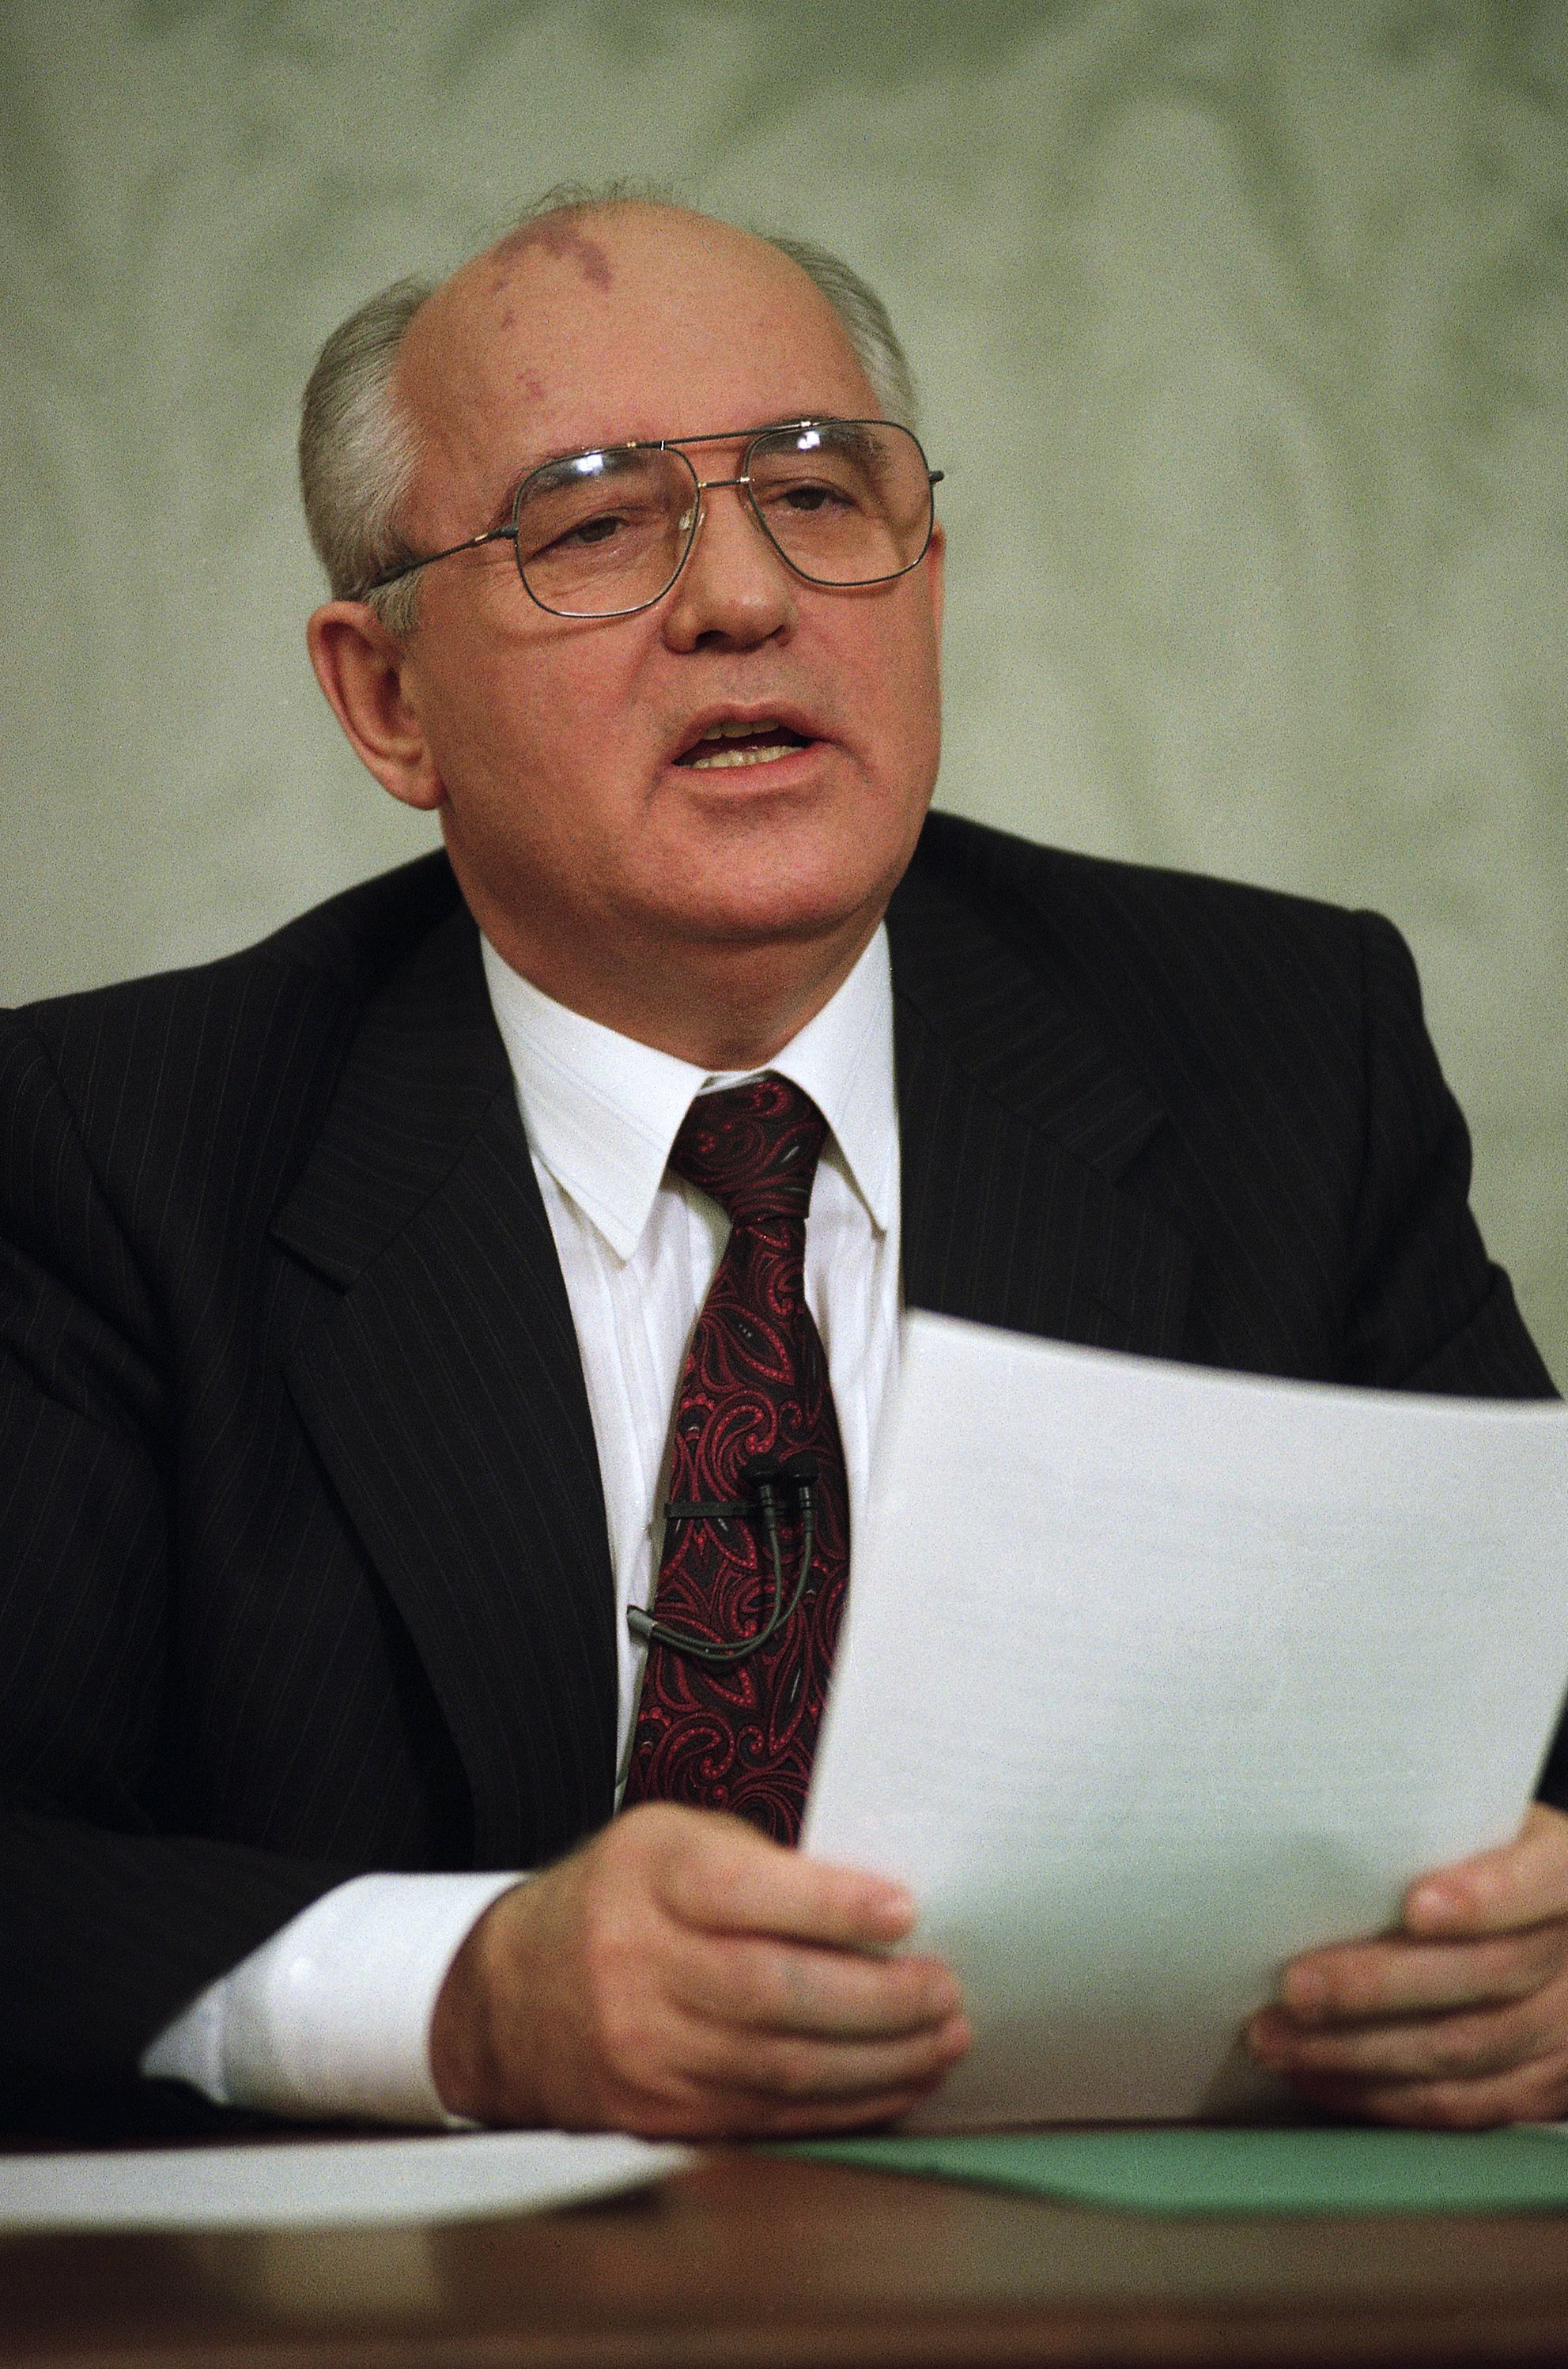 Mikhail Gorbachev the eight and final leader of the Soviet Union, announces his resignation in a televised address from the Kremlin in Moscow on Wednesday, Dec. 25, 1991. (File)